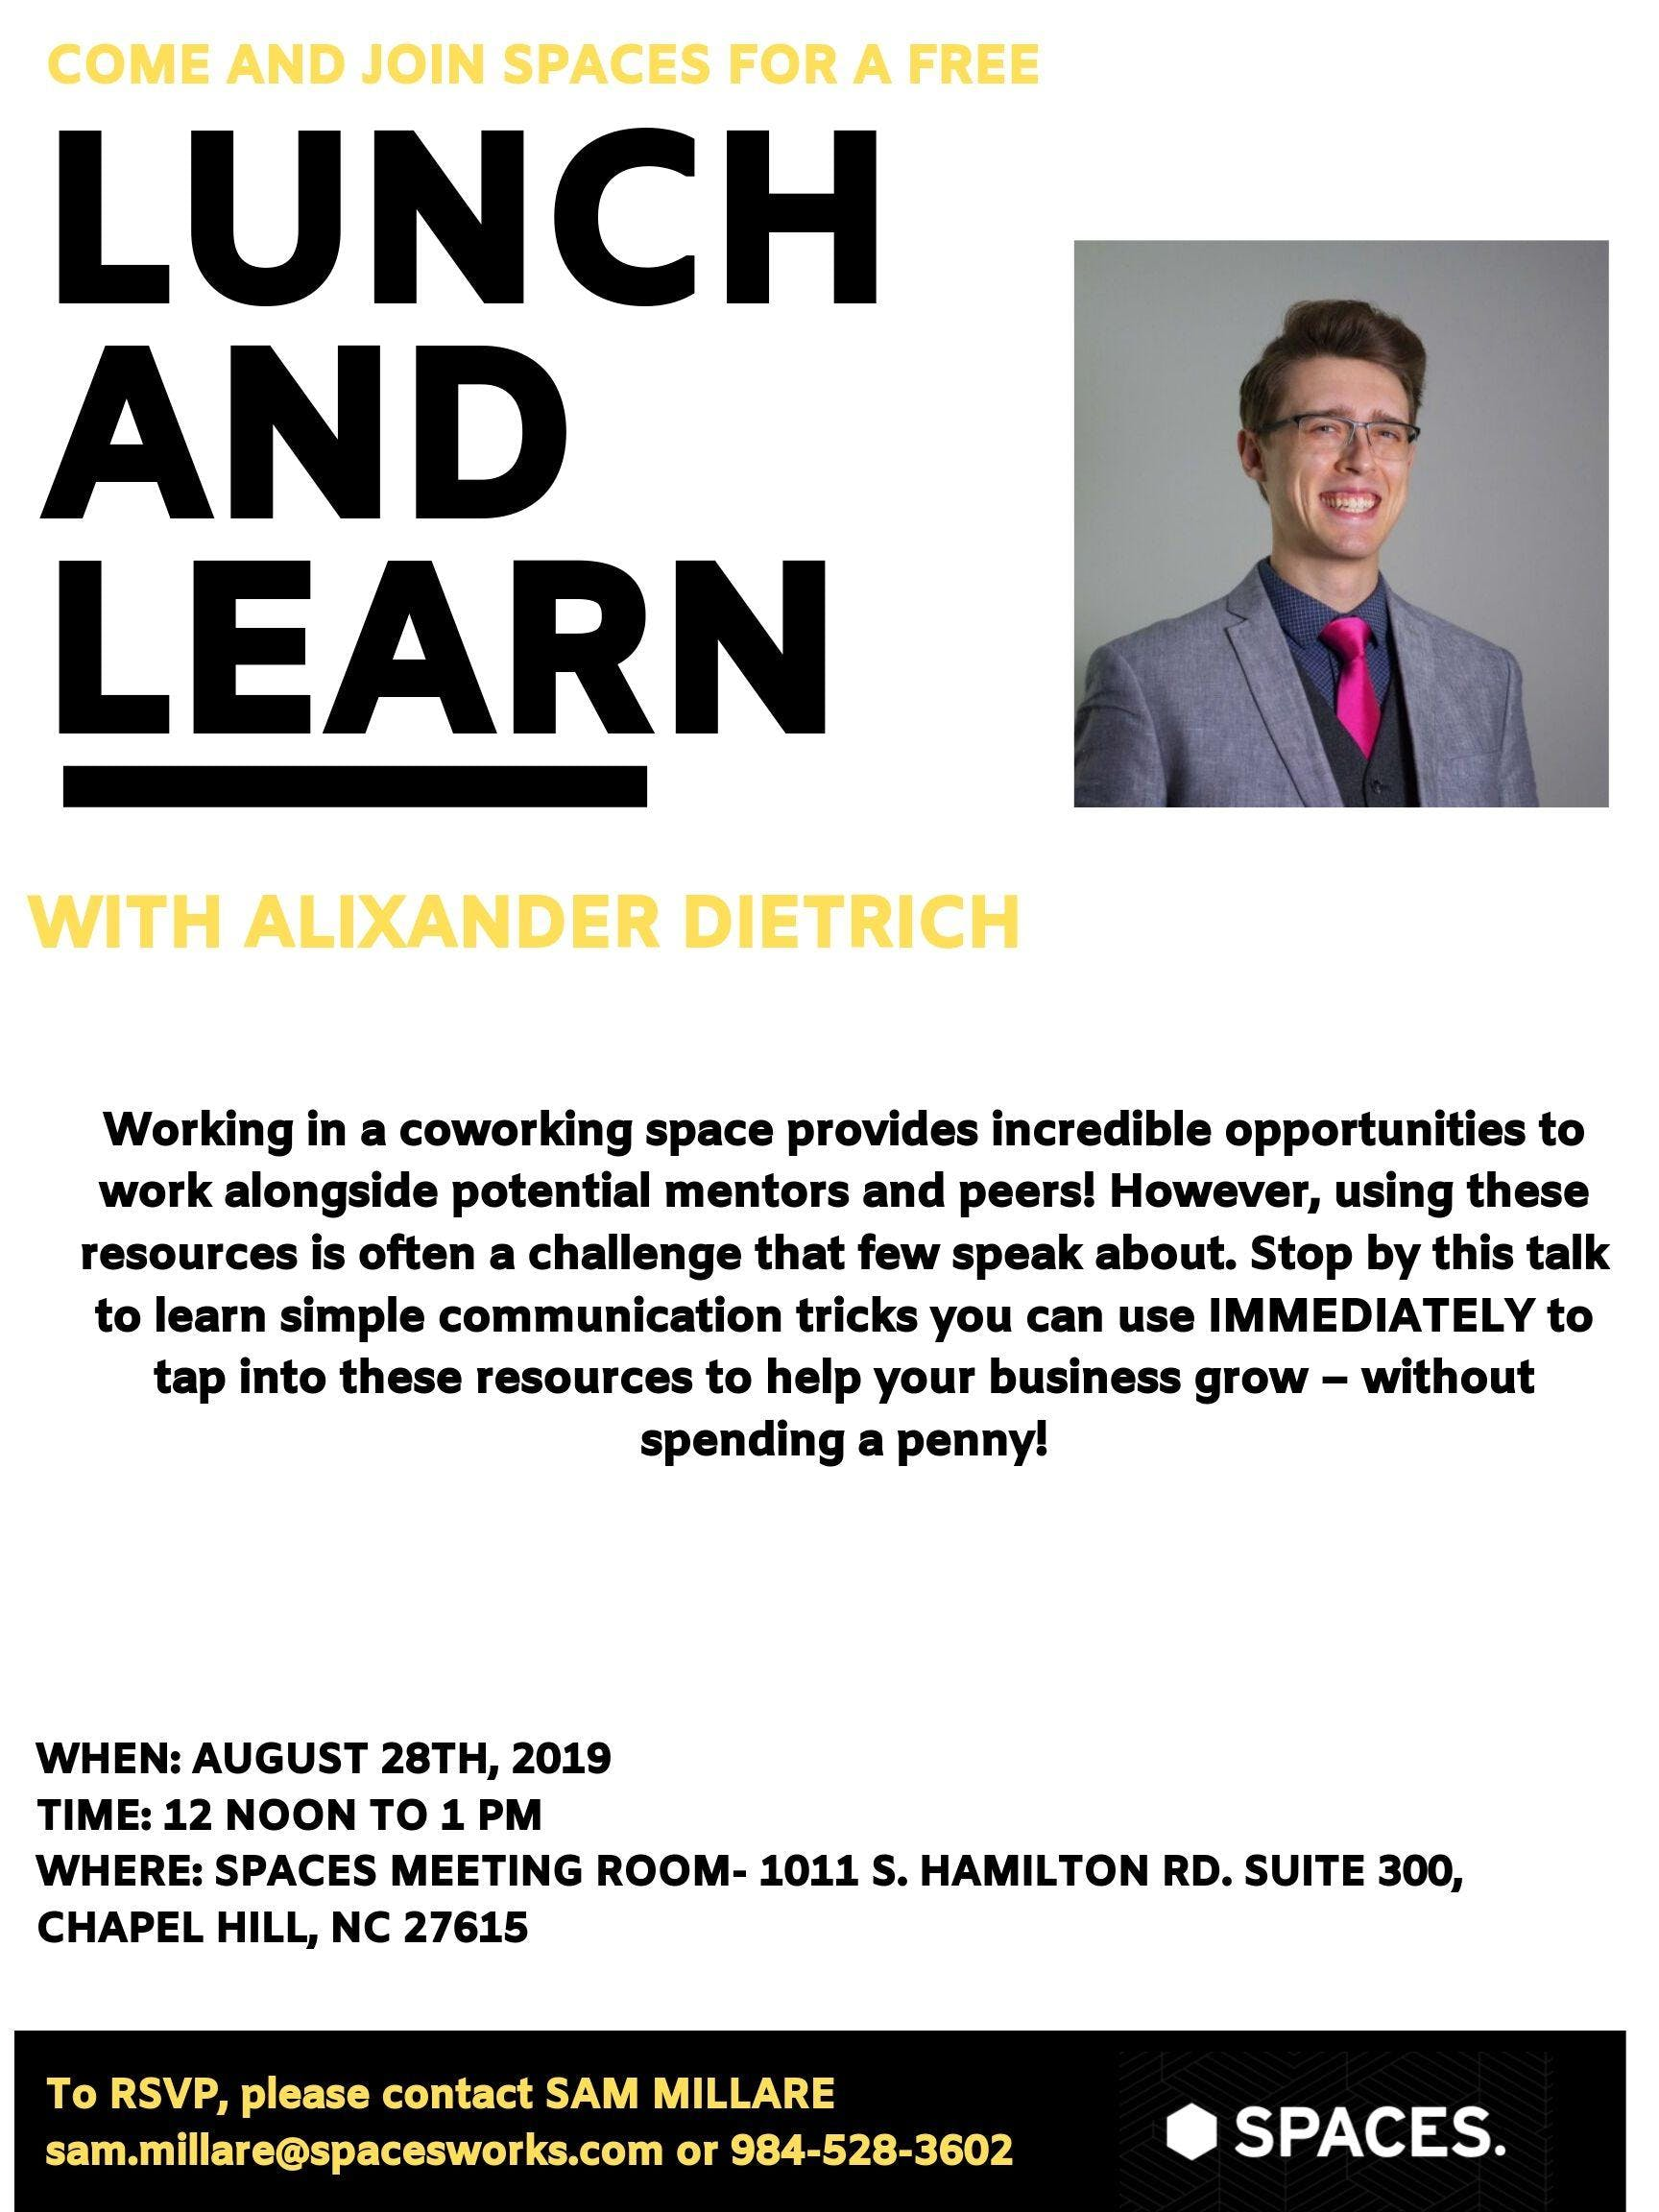 Join Spaces Chapel Hill for a FREE Lunch and Learn with Alixander Diettrich